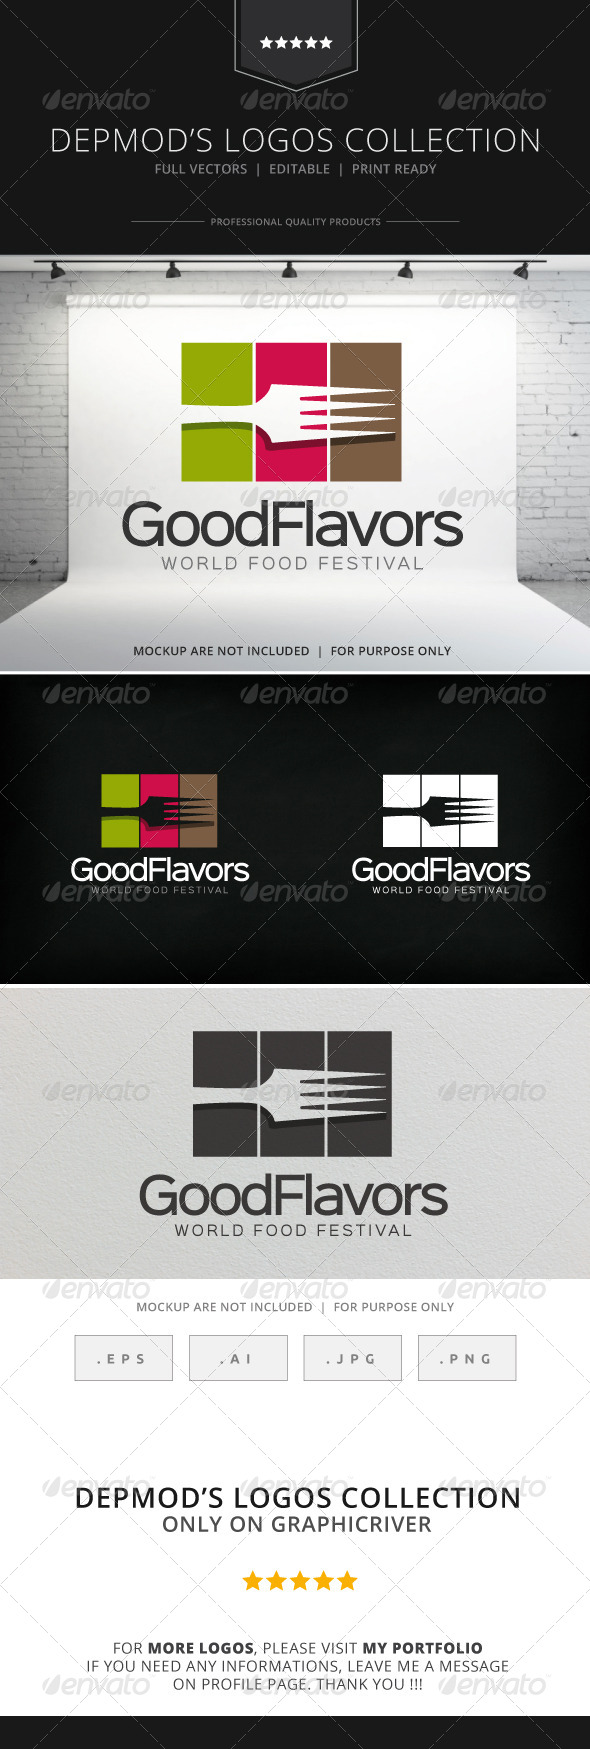 GraphicRiver Good Flavors Logo 8230388